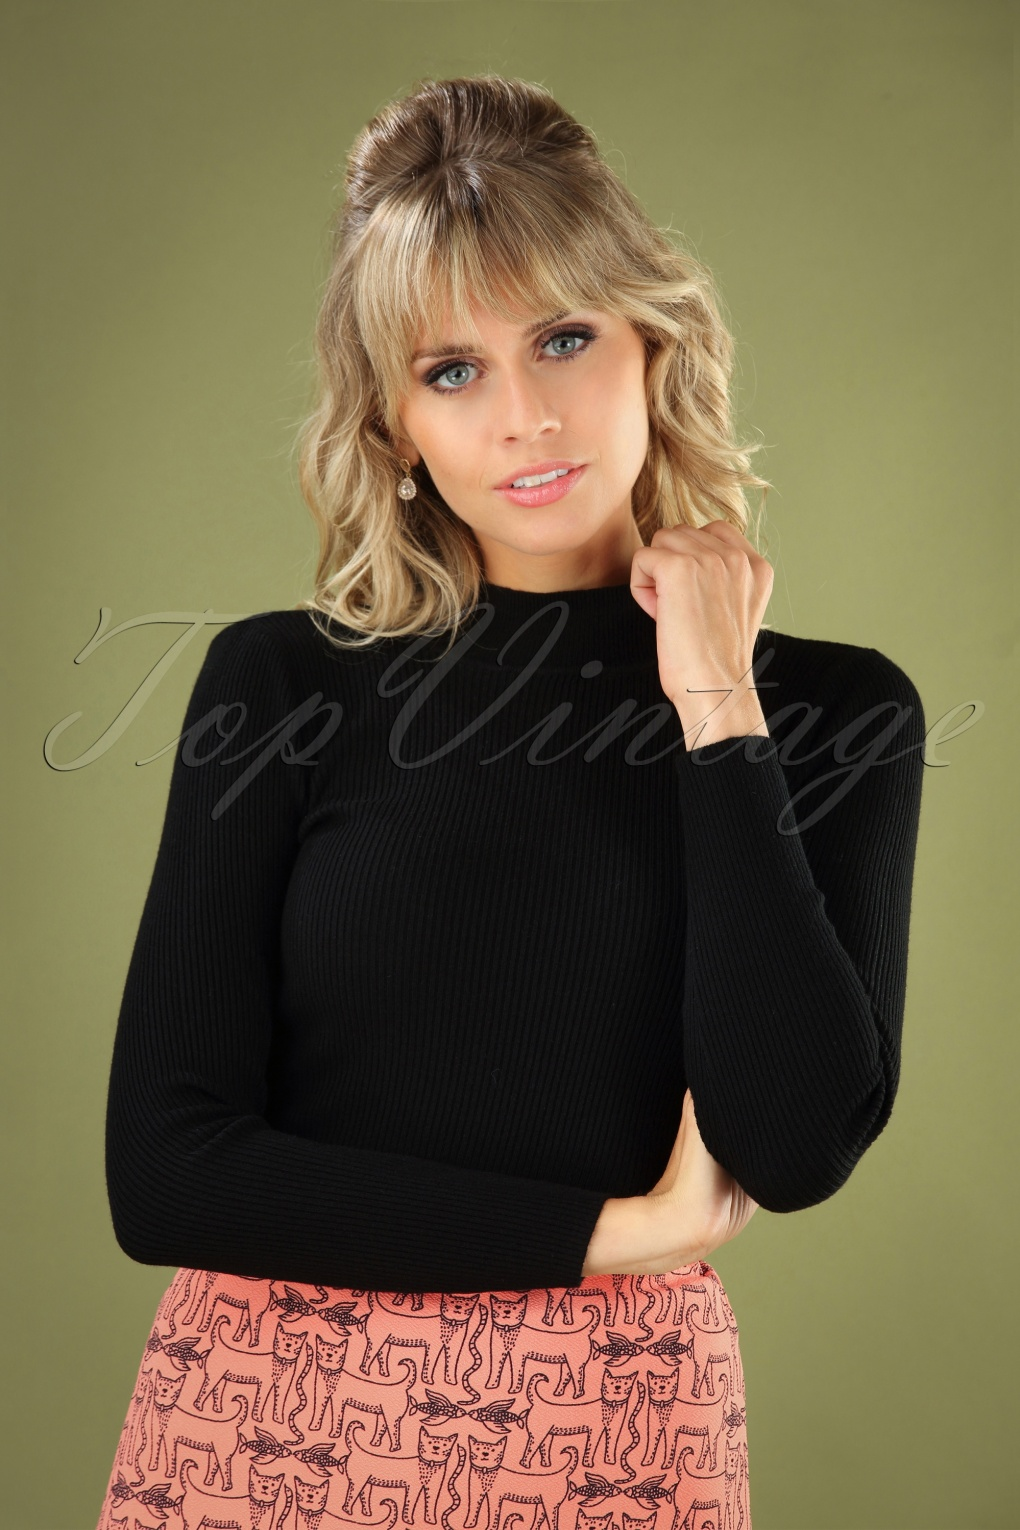 Vintage Inspired Dresses & Clothing UK 60s Jessica Turtleneck Jumper in Black £35.68 AT vintagedancer.com